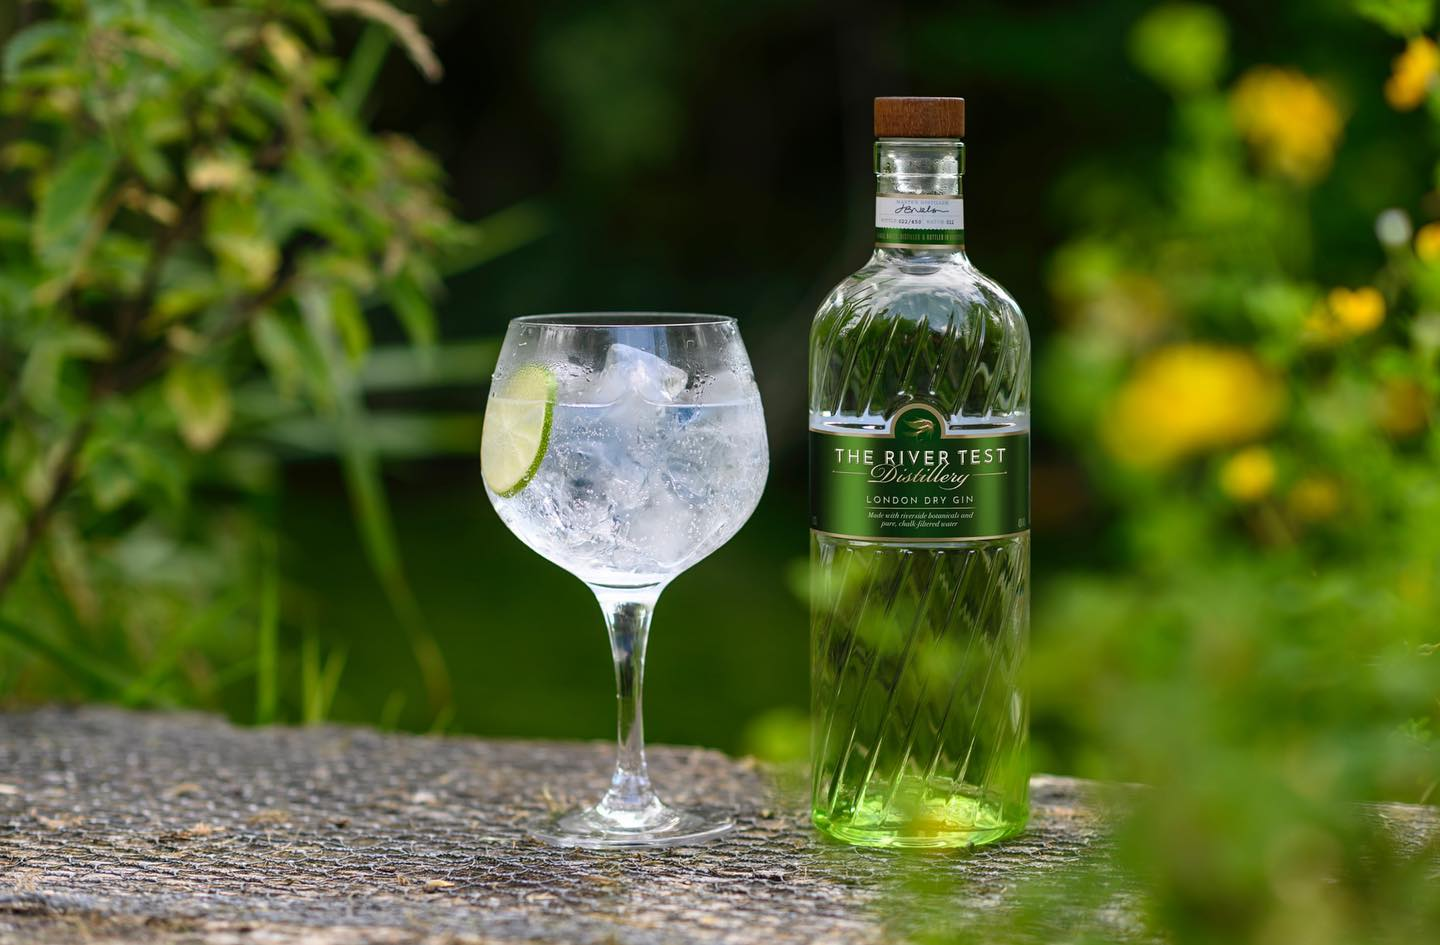 river rest distillery best in uk